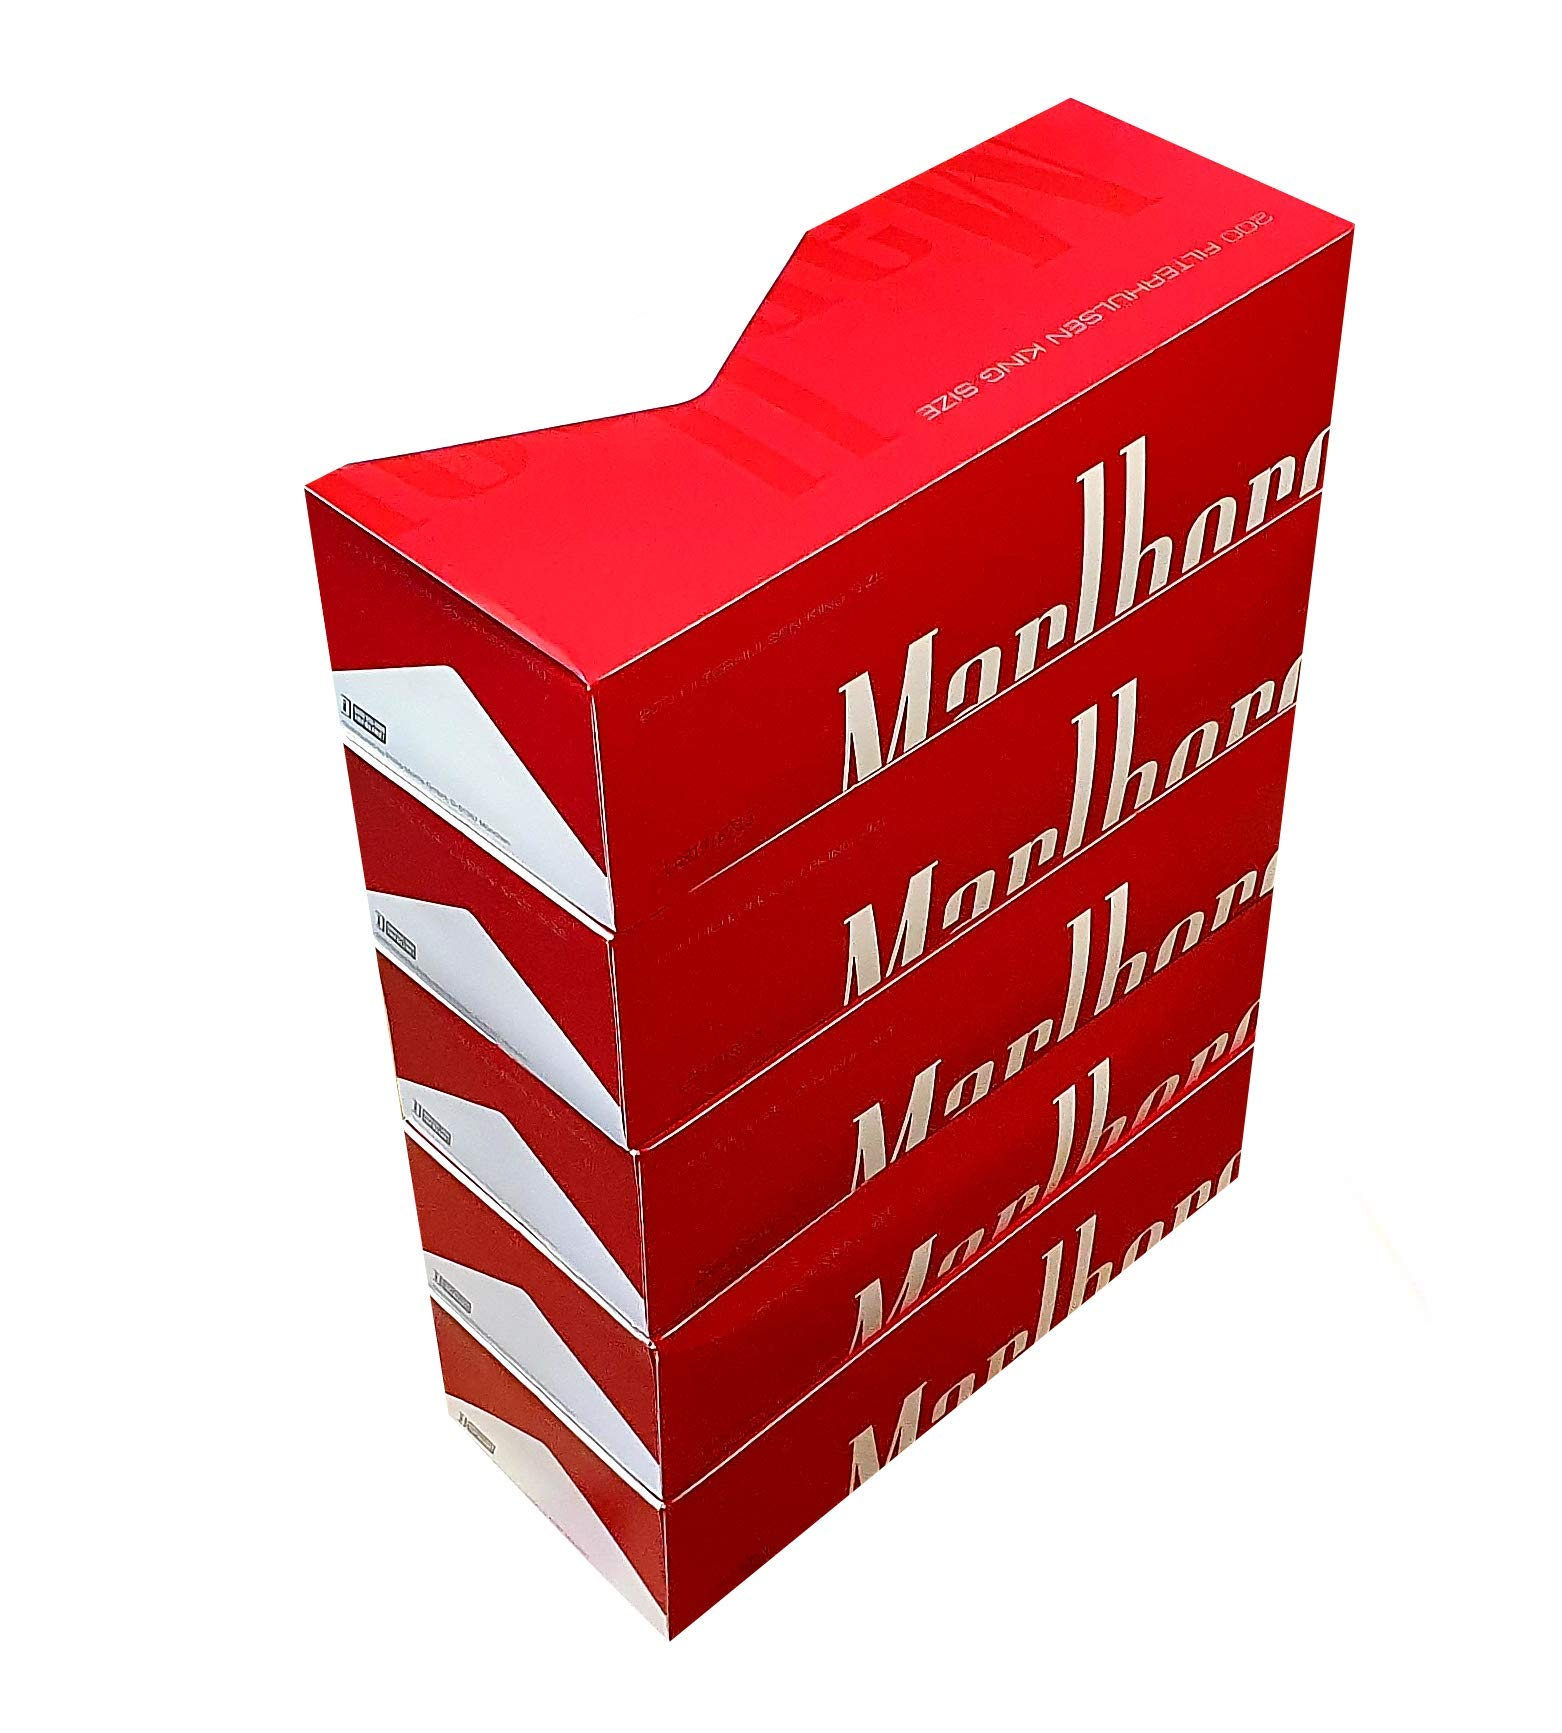 Marlboro Red King Size Cigarette Tubes Pack of 1000